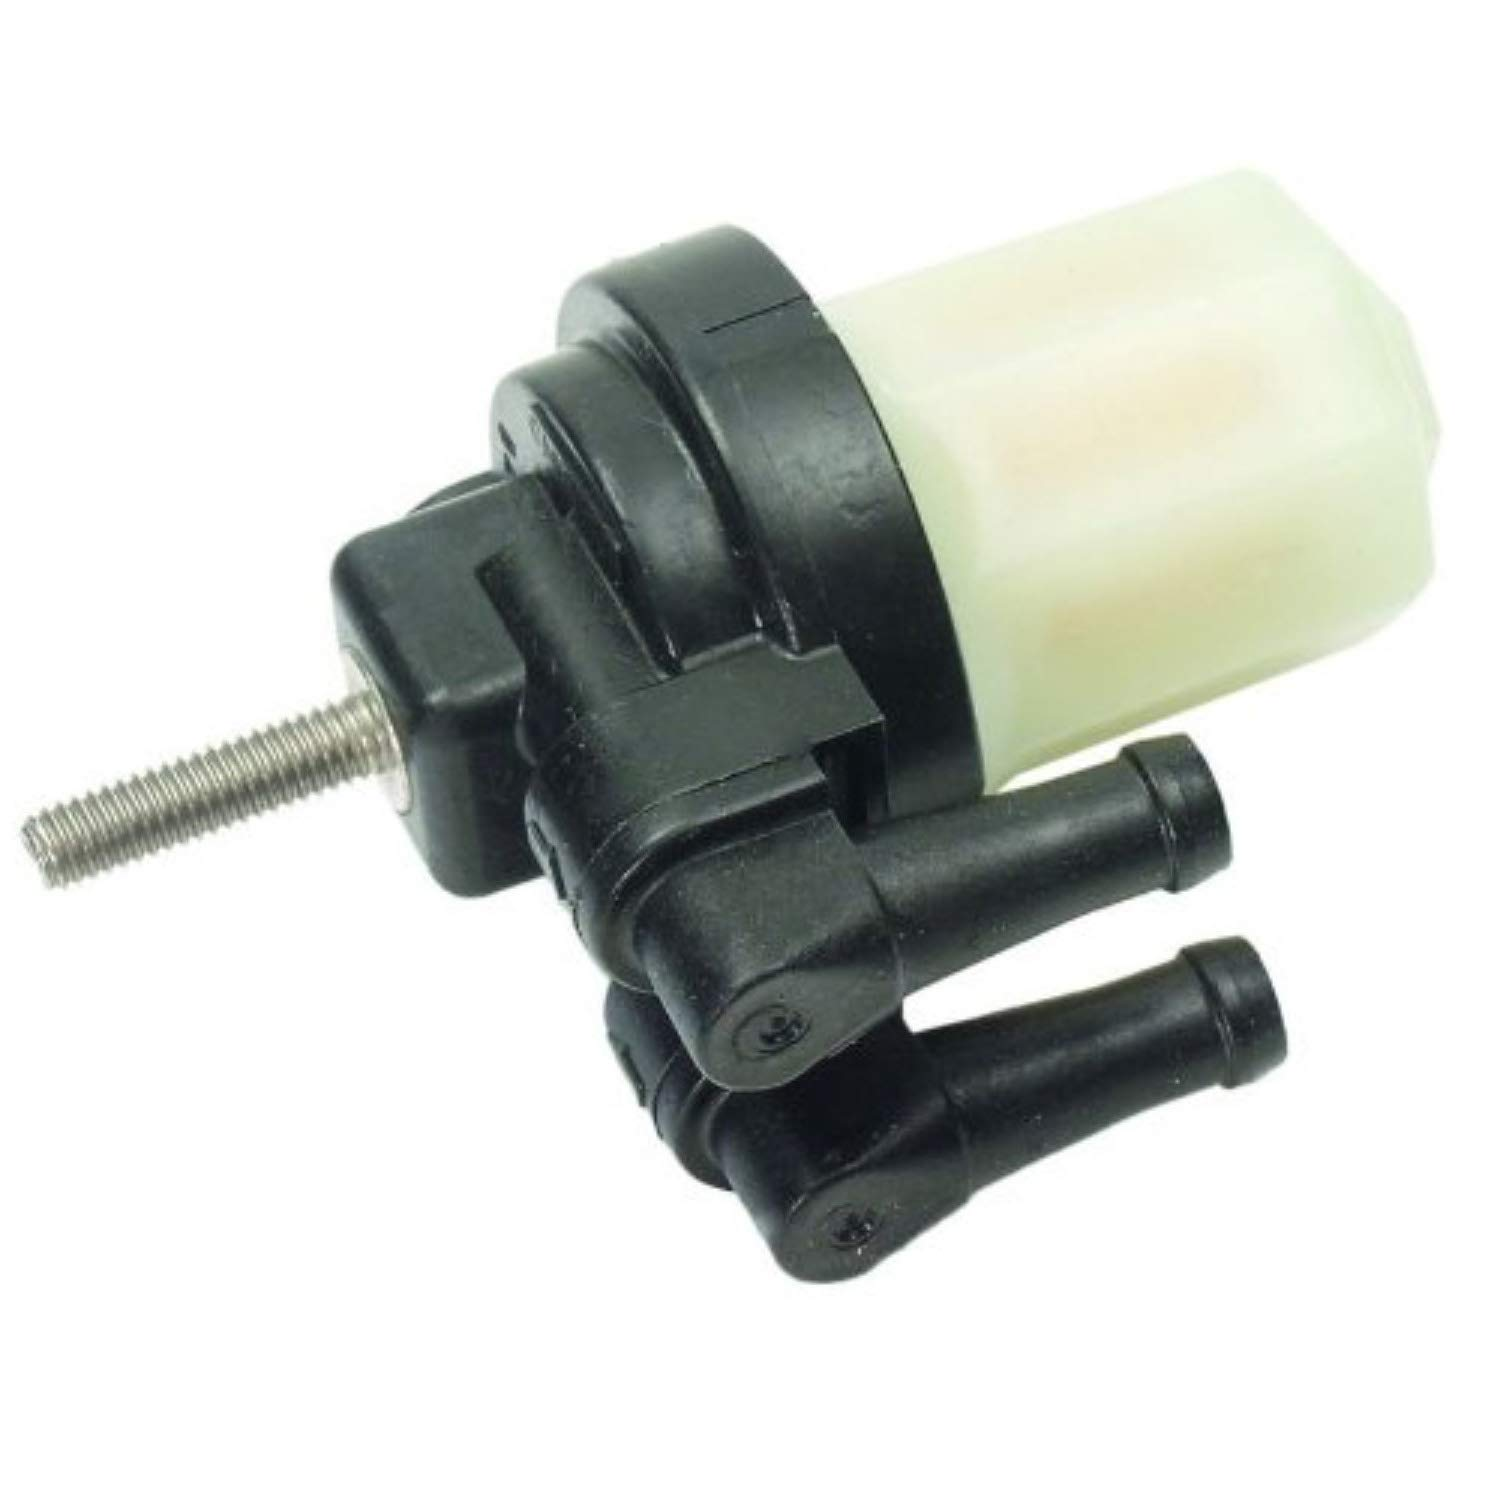 WRG-8908] Mercury Outboard Fuel Filter Change